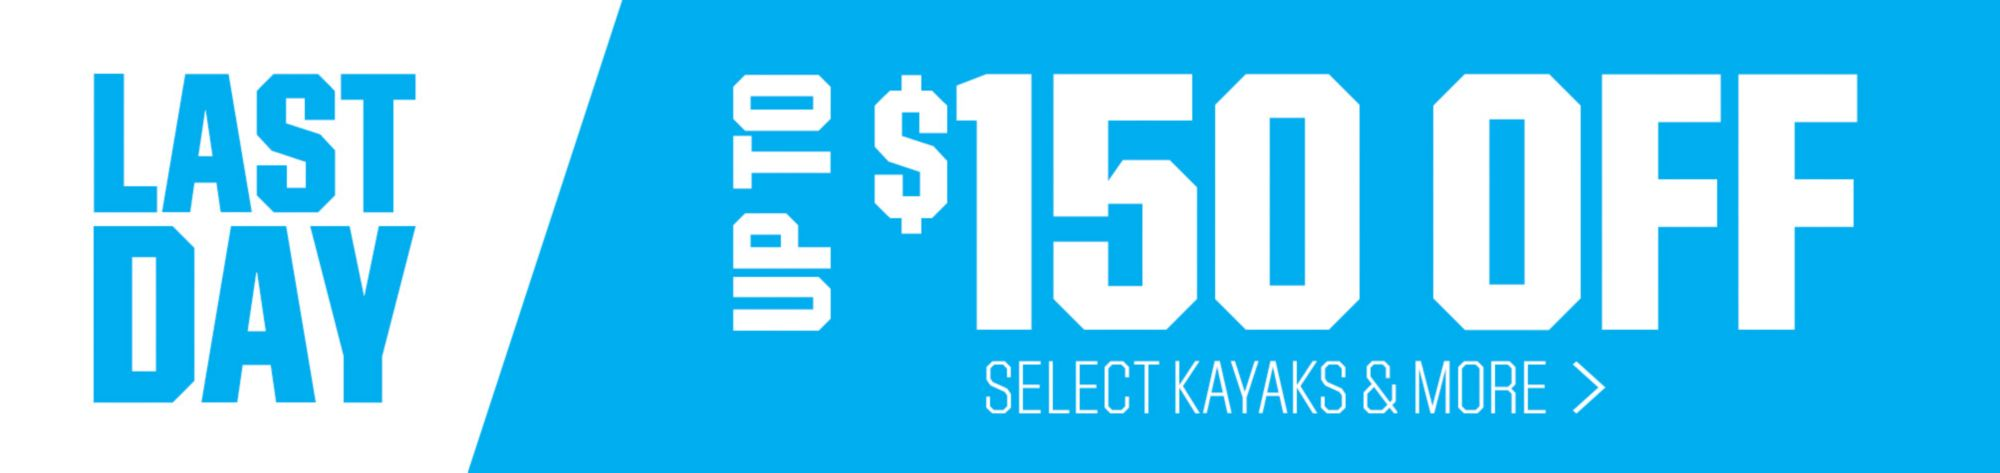 Last Day To Save Up To $150 On Kayaks And Canoes